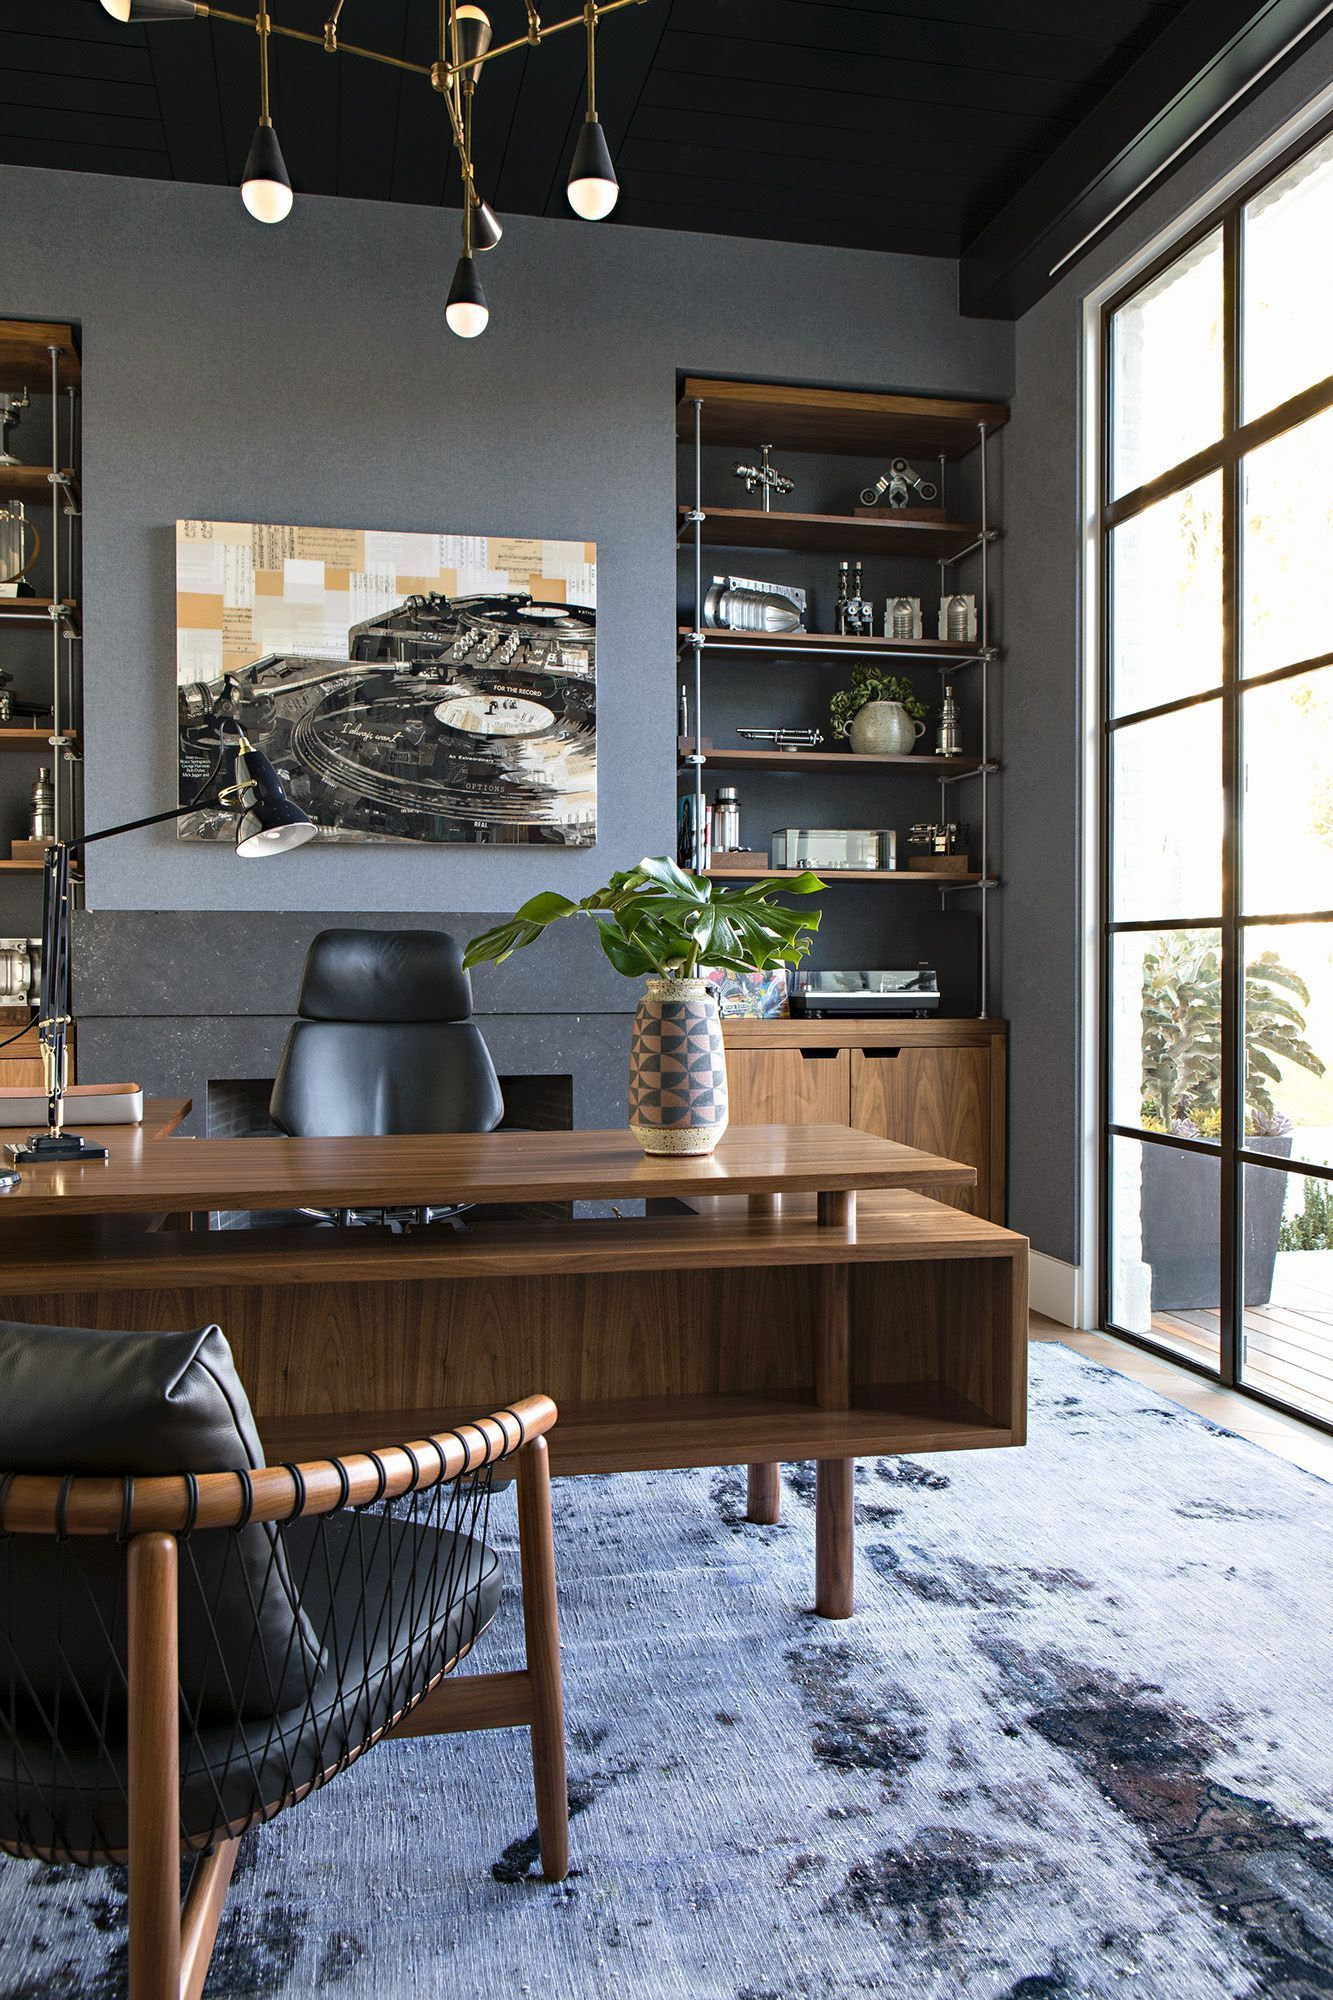 Home Office Designs And Layouts. Find Home Office Ideas, Including Ideas  For A Small